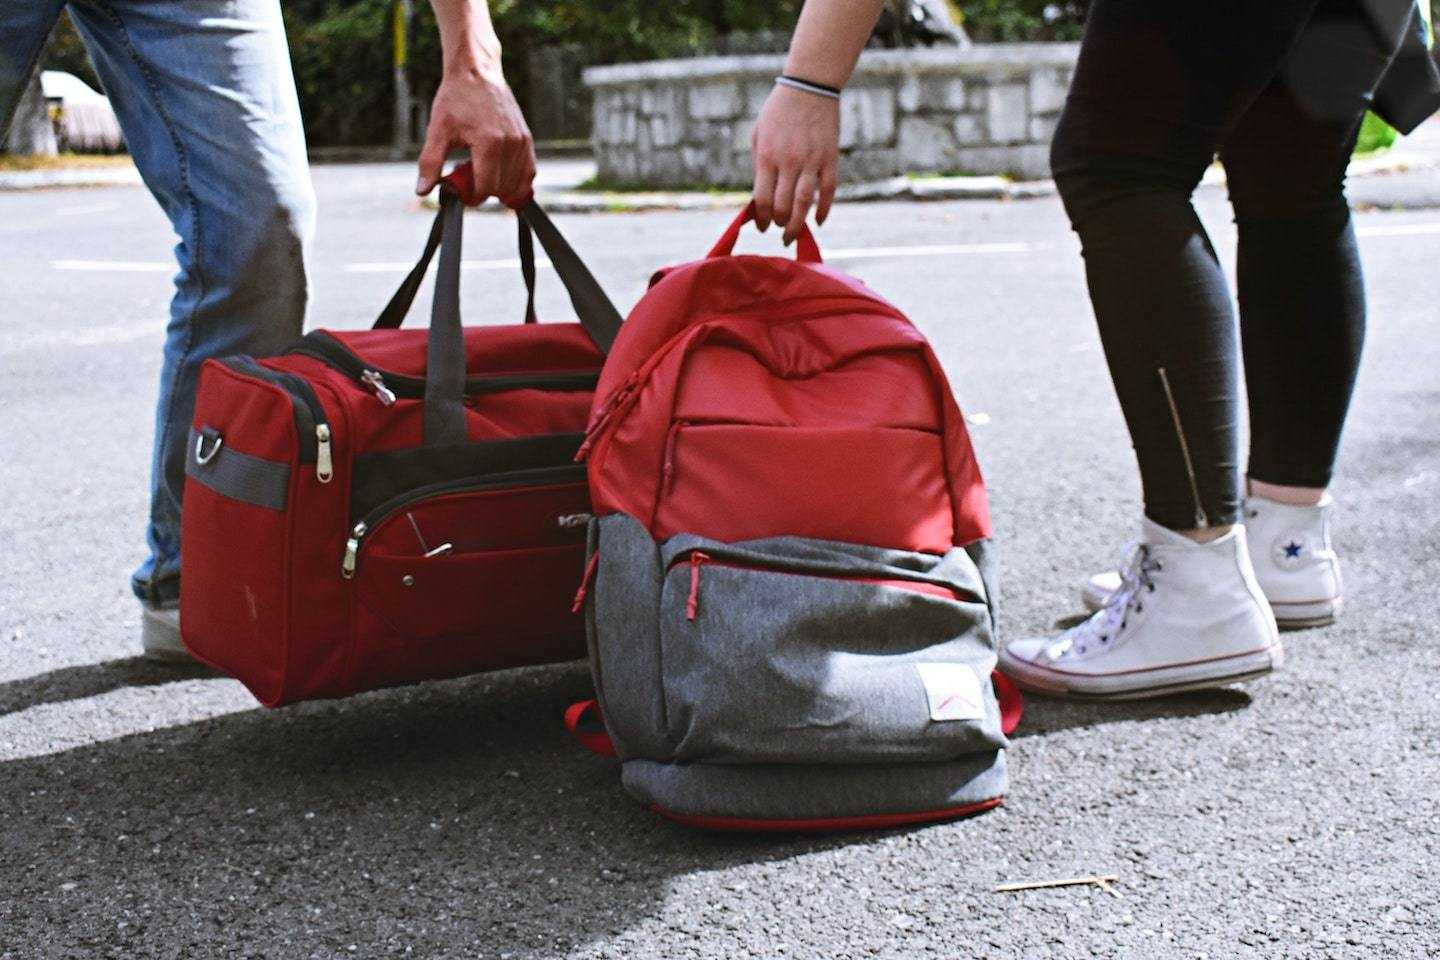 two people, one with duffel bag the other with backpack